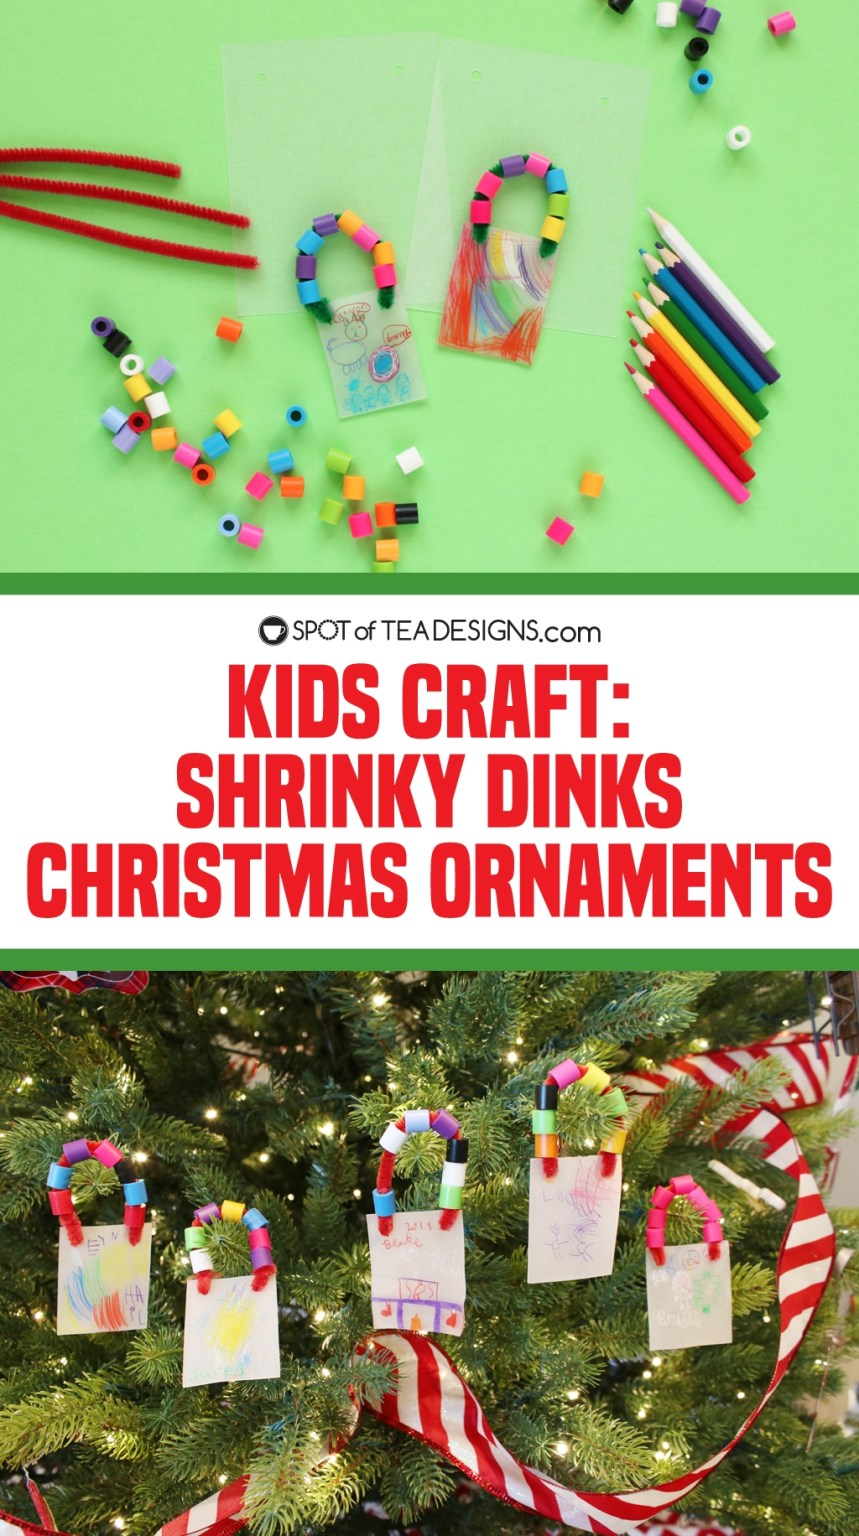 Kids Craft Shrinky Dinks Christmas Ornaments - a fun gift kids can make for grandparents! | spotofteadesigns.com